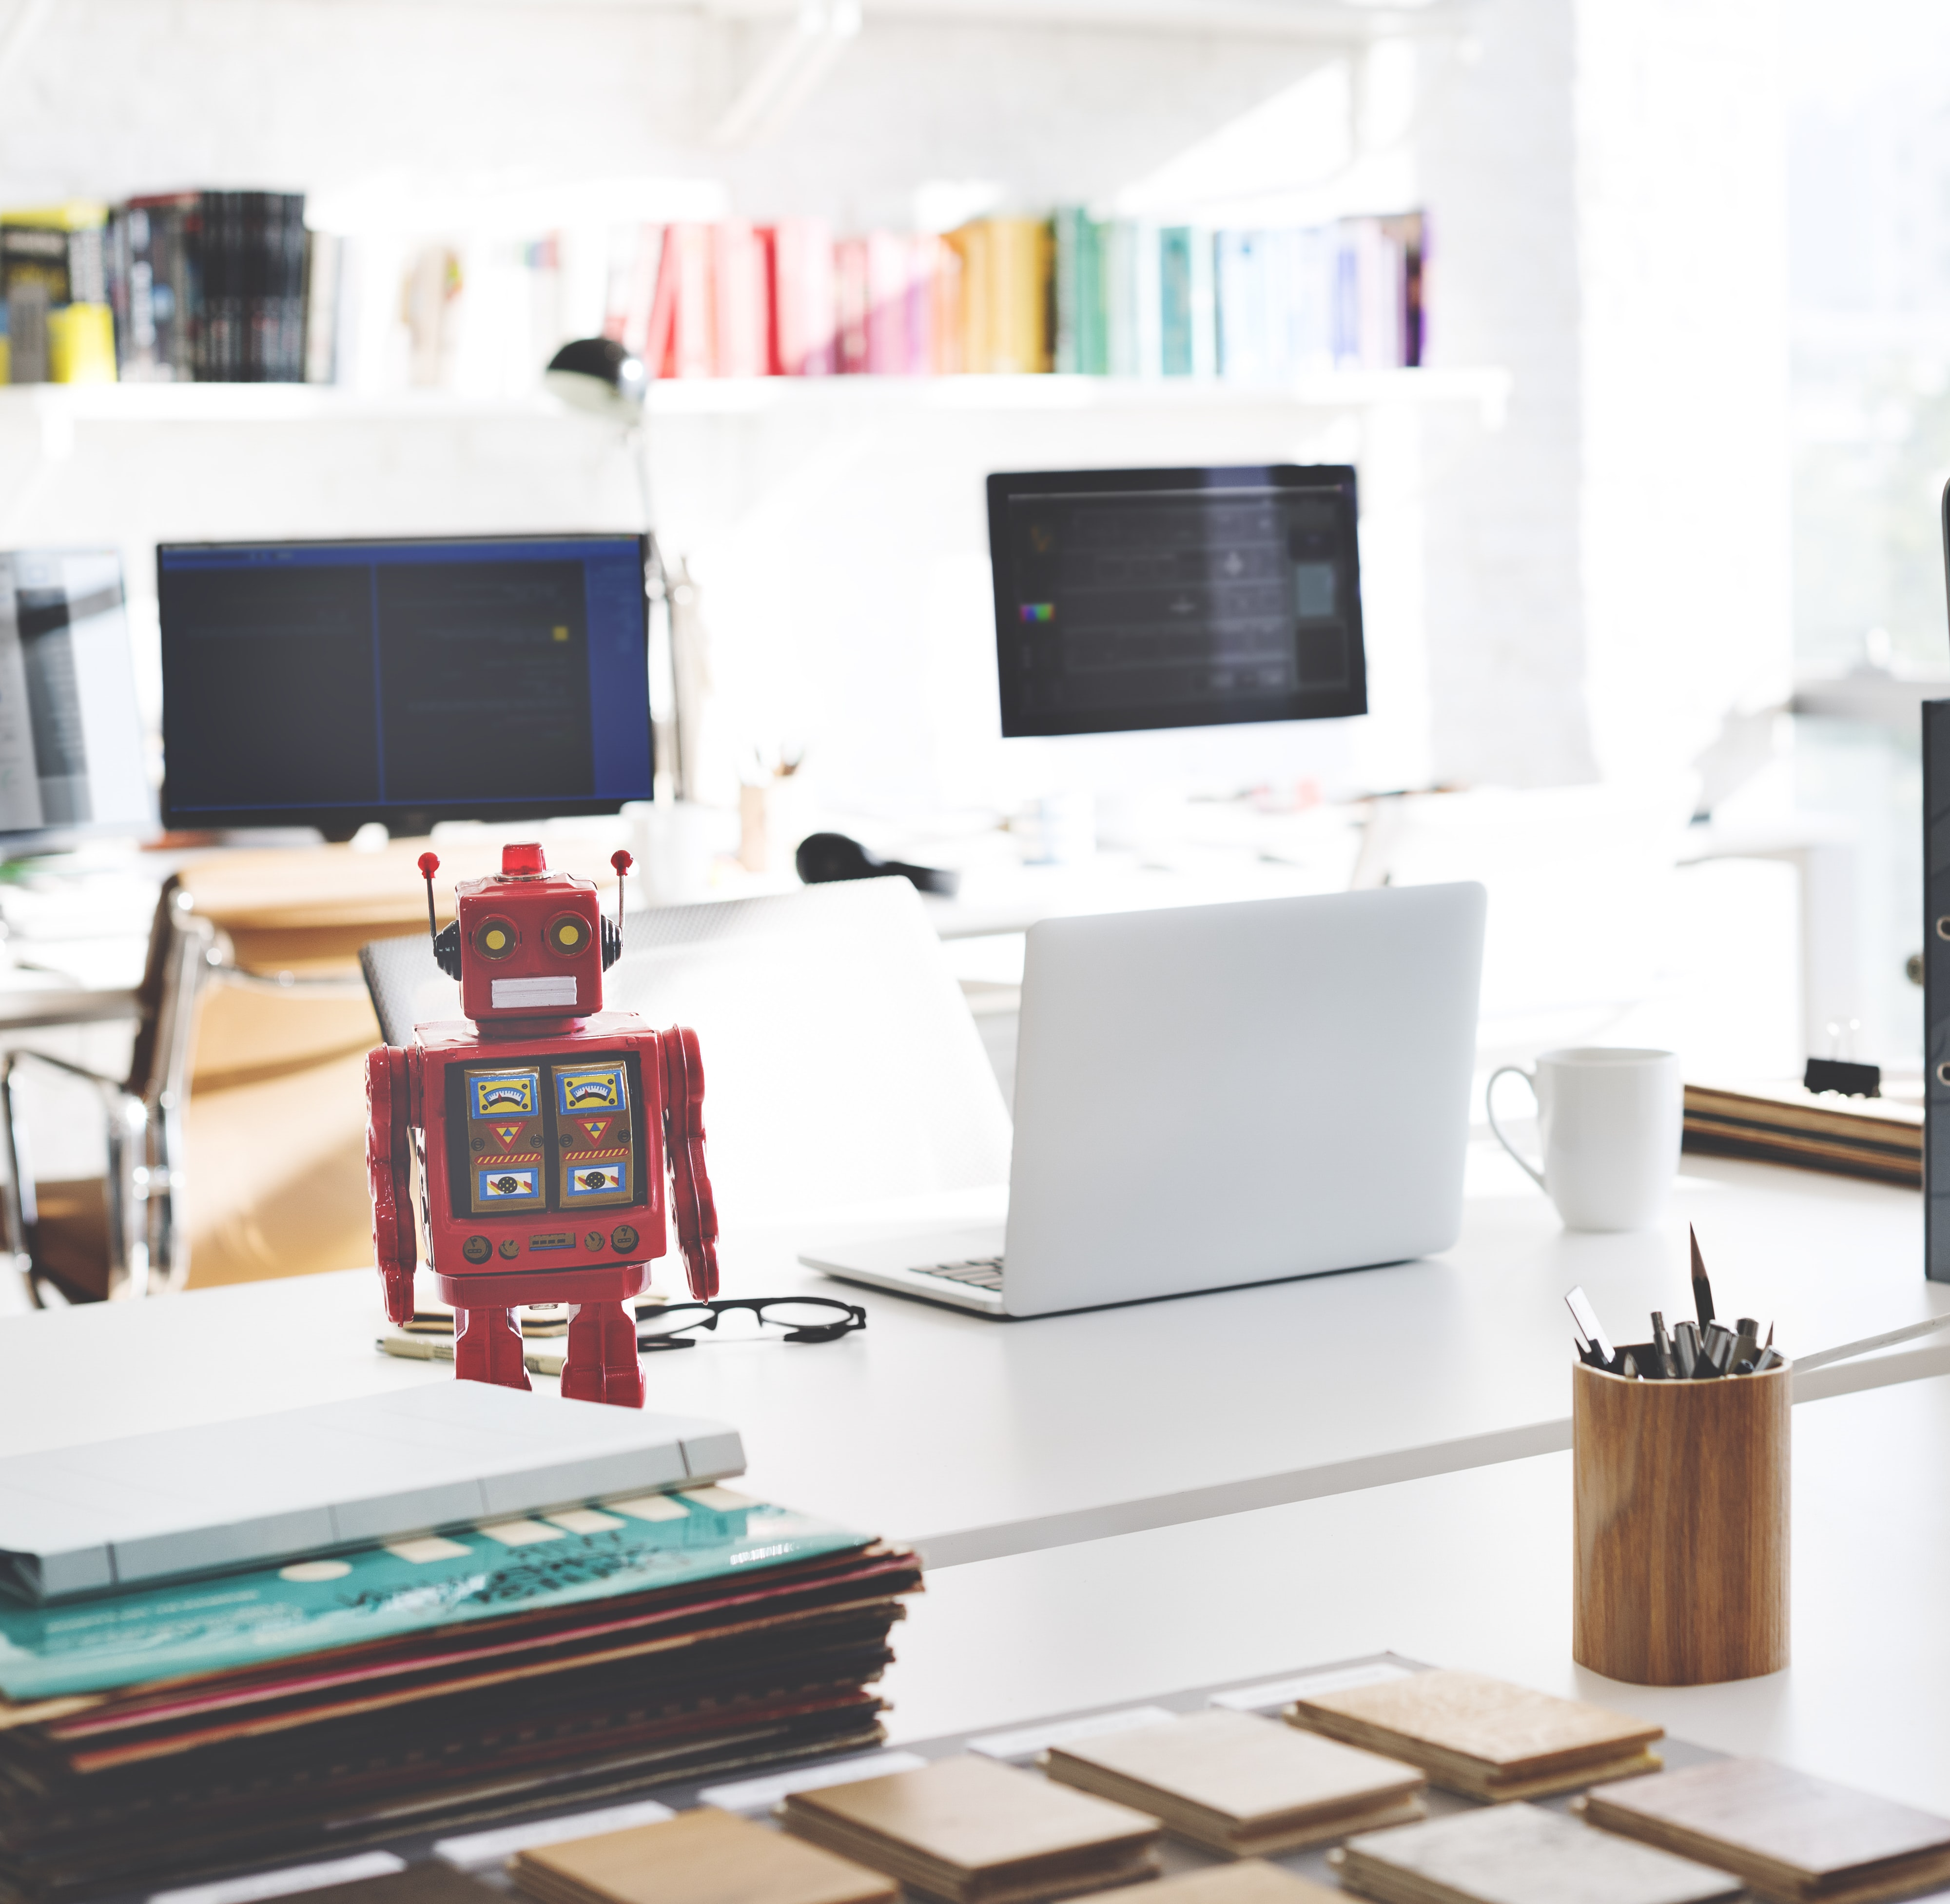 opened white laptop computer beside red robot toy